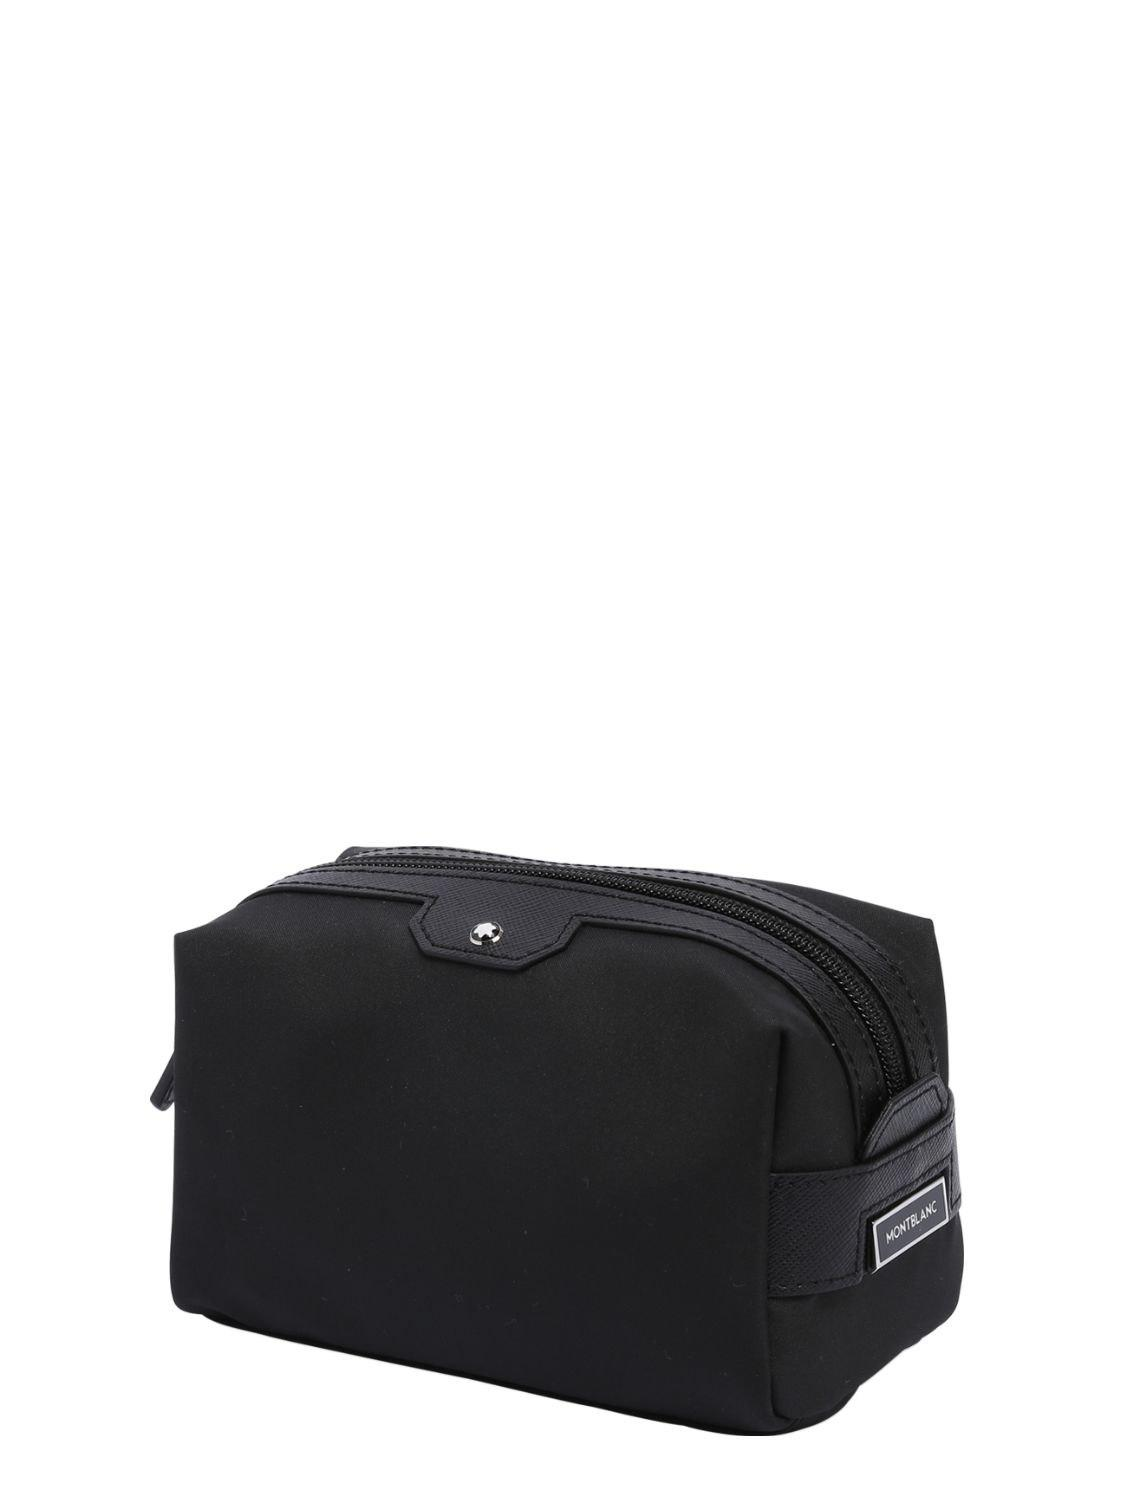 0e88a3e60f4c9 Montblanc Small Sartorial Jet Toiletry Bag in Black for Men - Save 33% -  Lyst